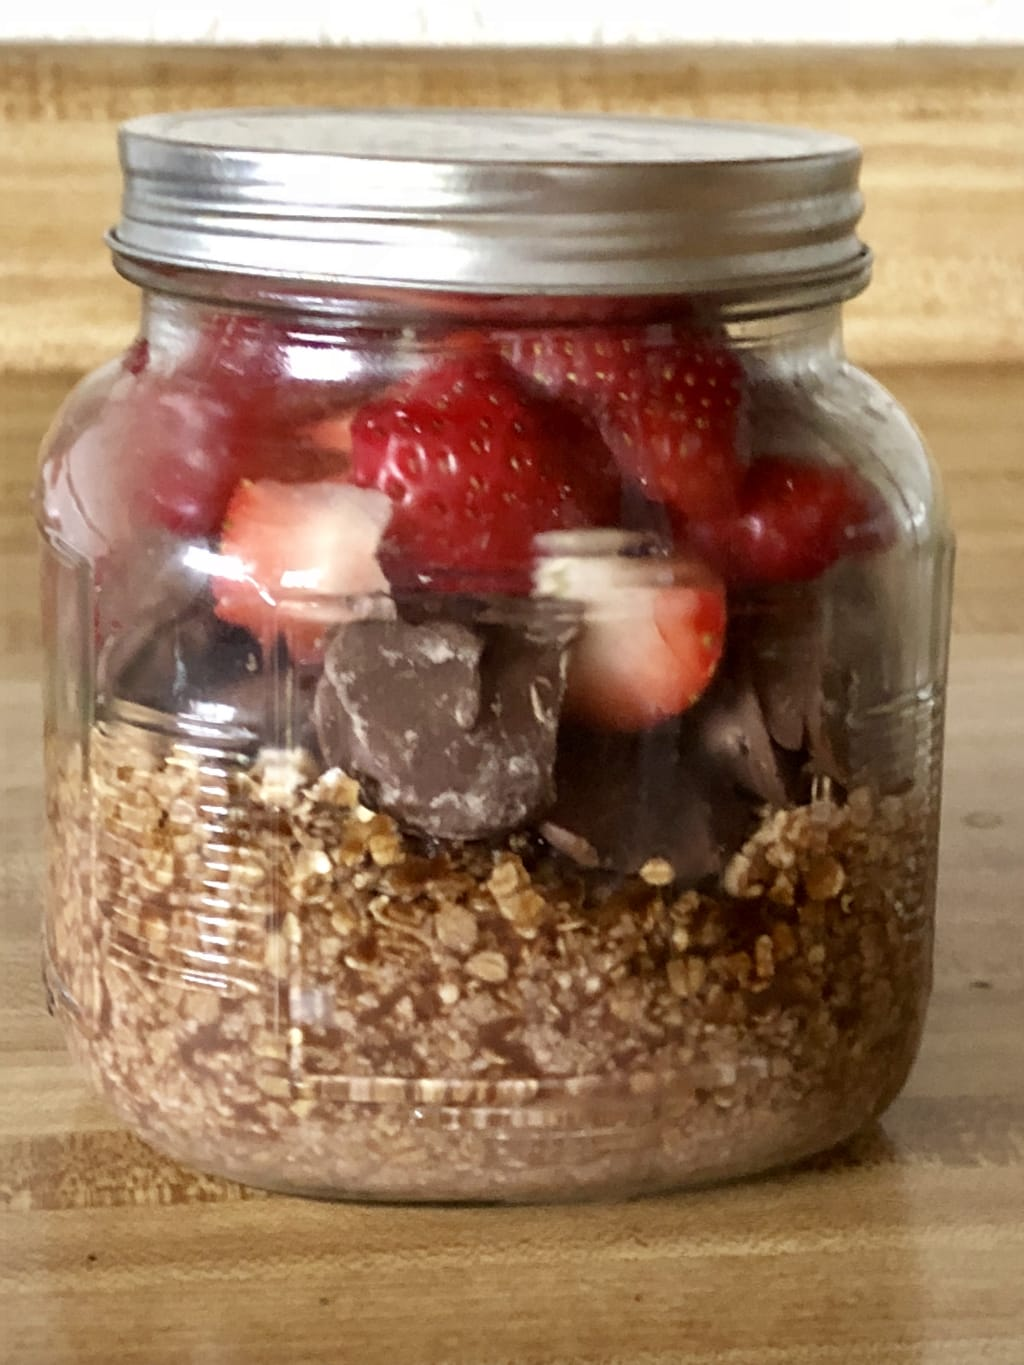 Strawberries and Chocolate Milk Overnight Oats